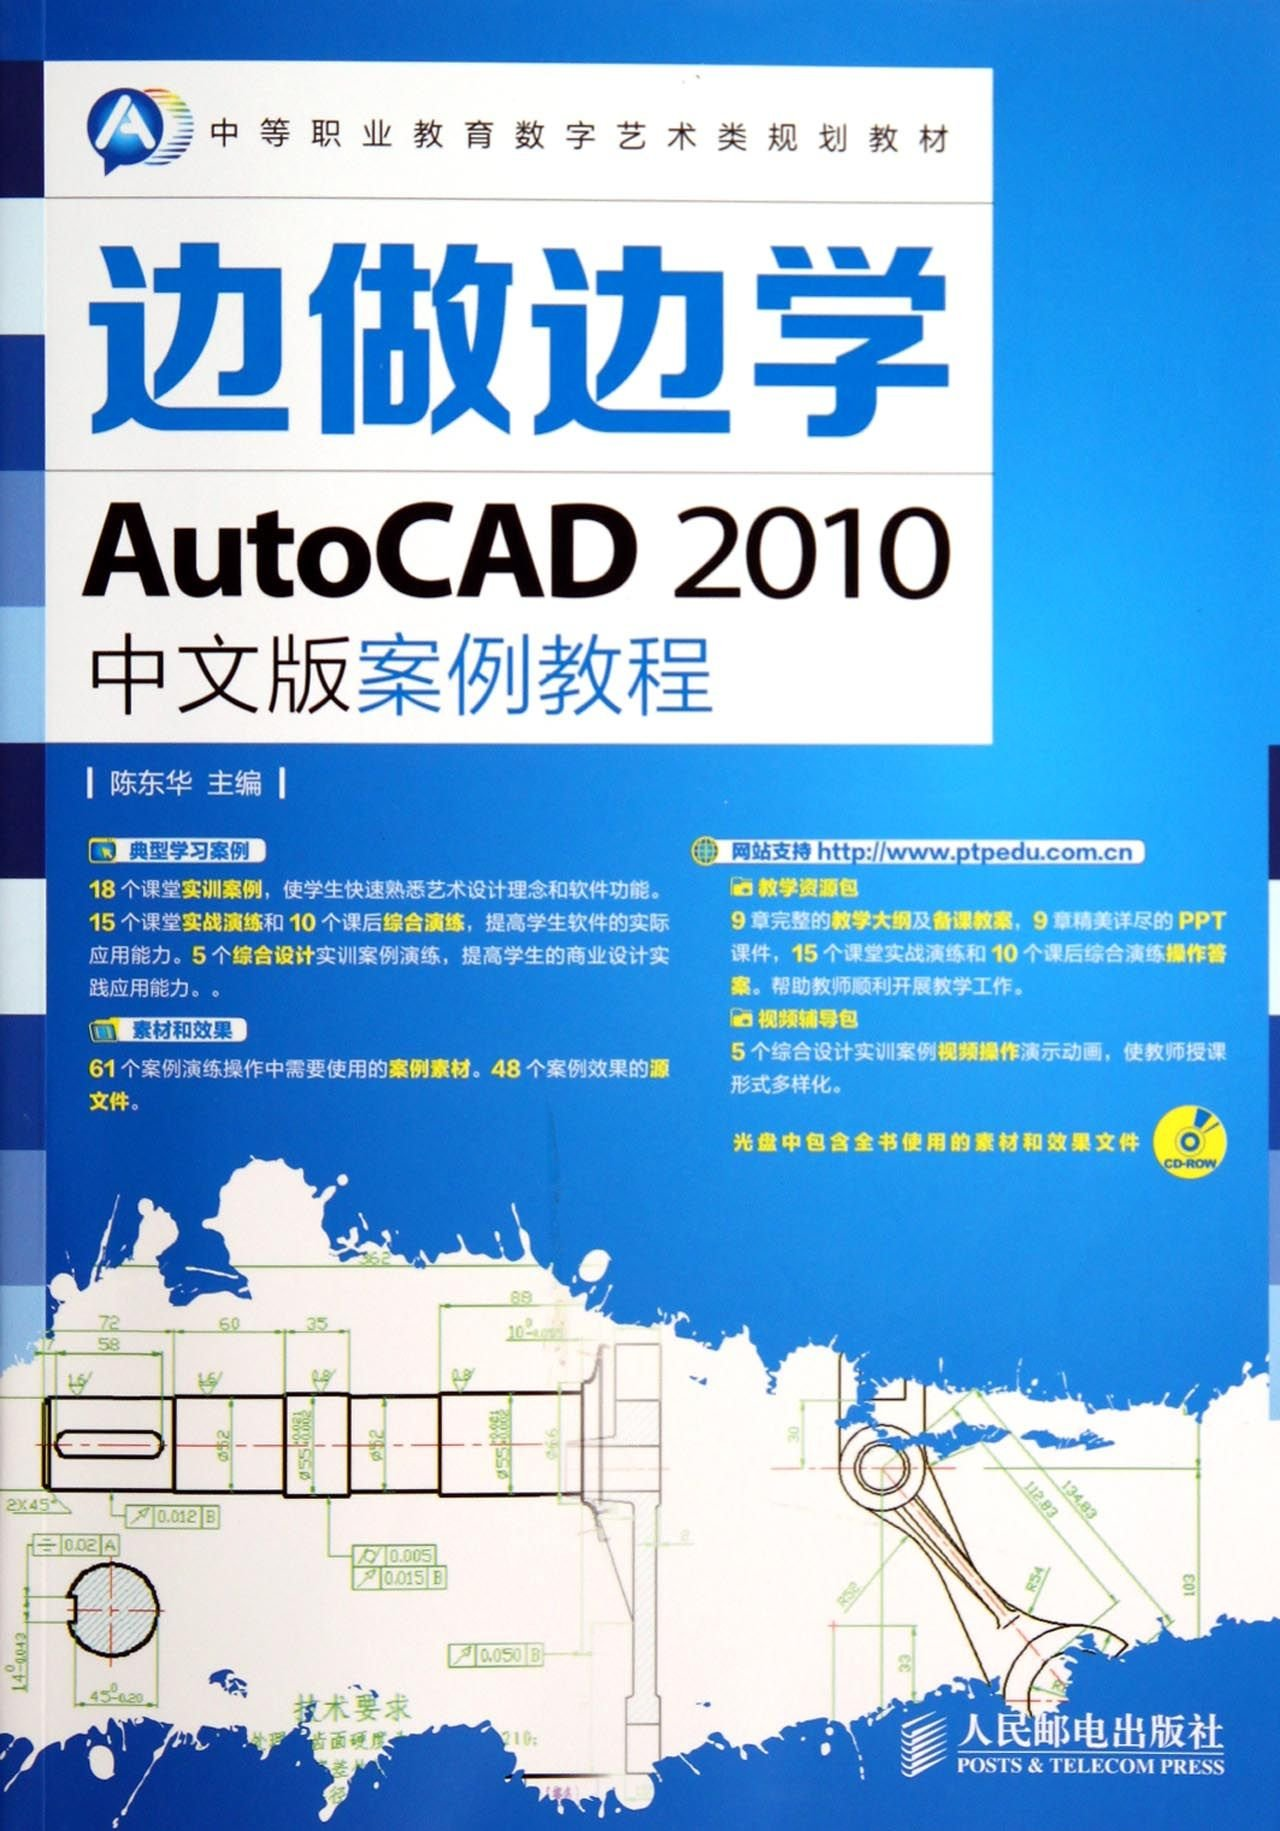 Download Learning by doing - AutoCAD 2010 Chinese edition case tutorial(Chinese Edition) PDF